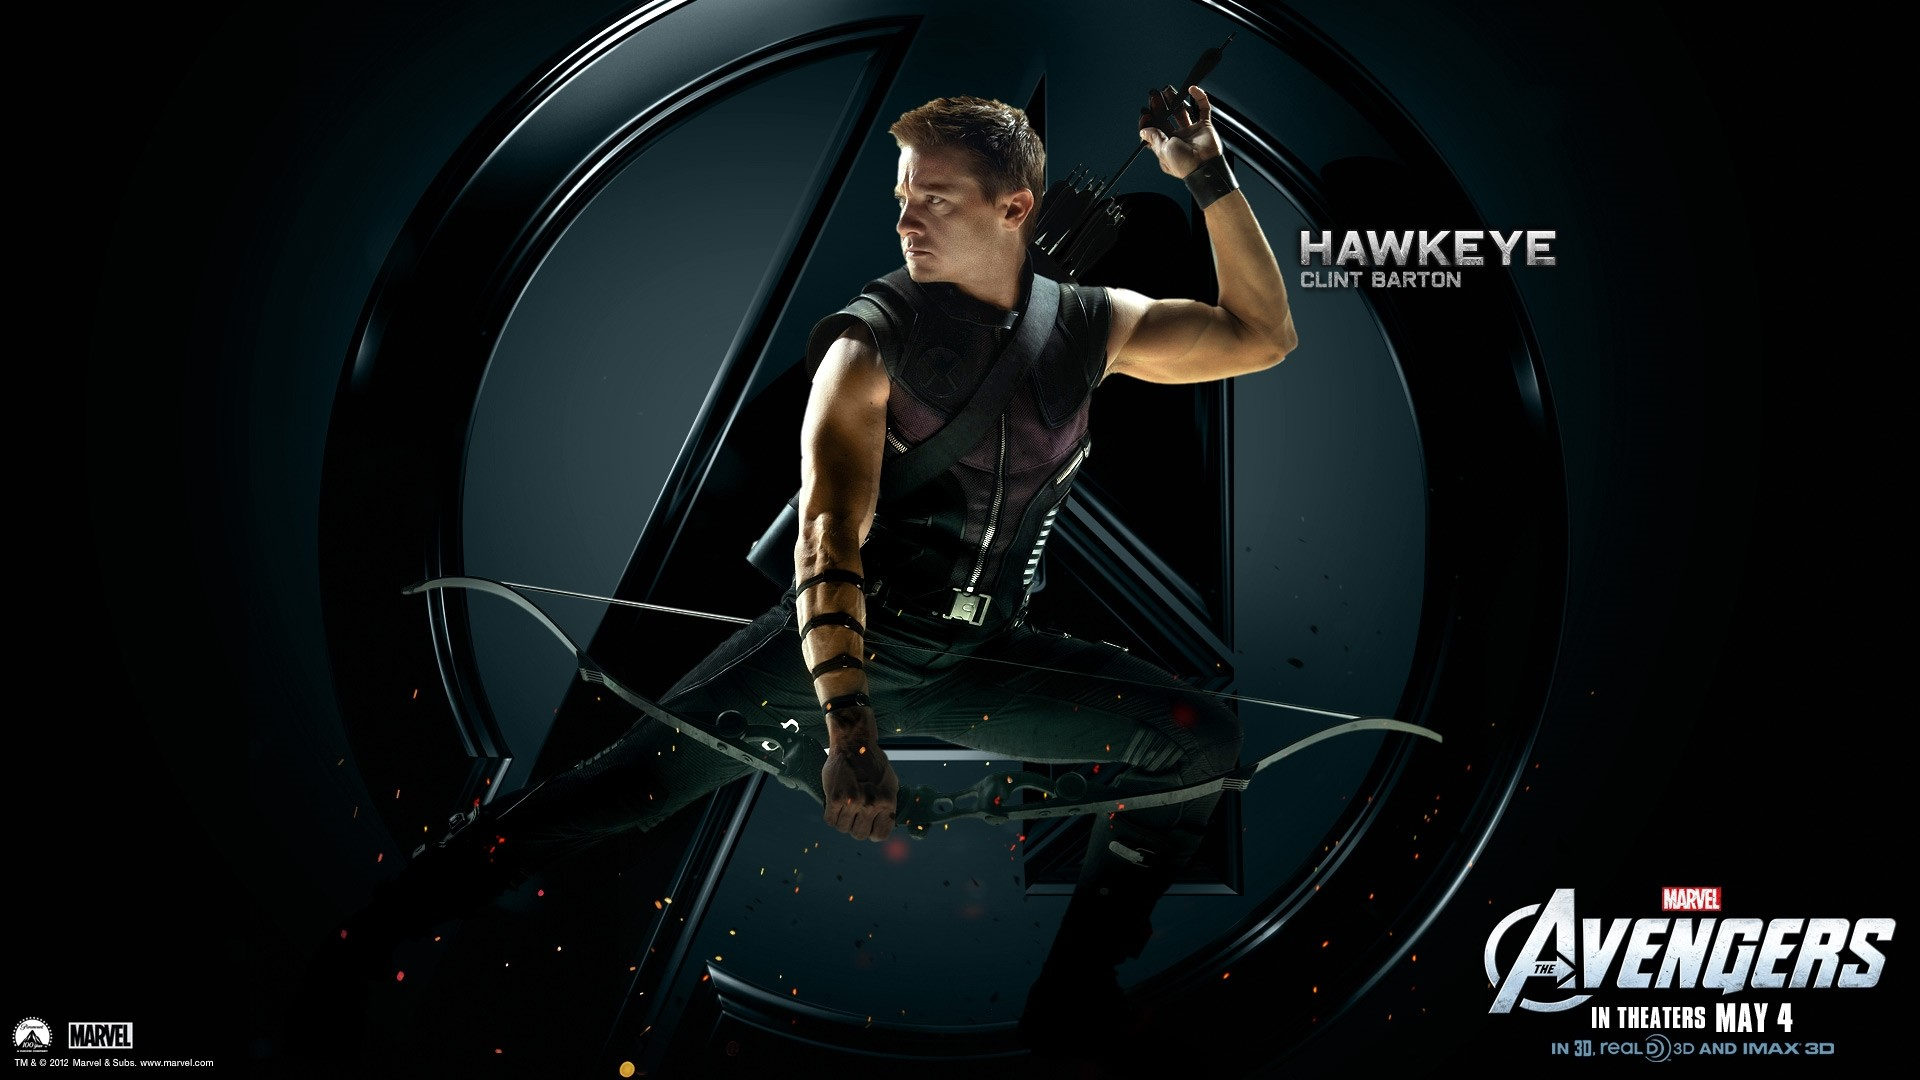 1920x1080 hawkeye movie hd